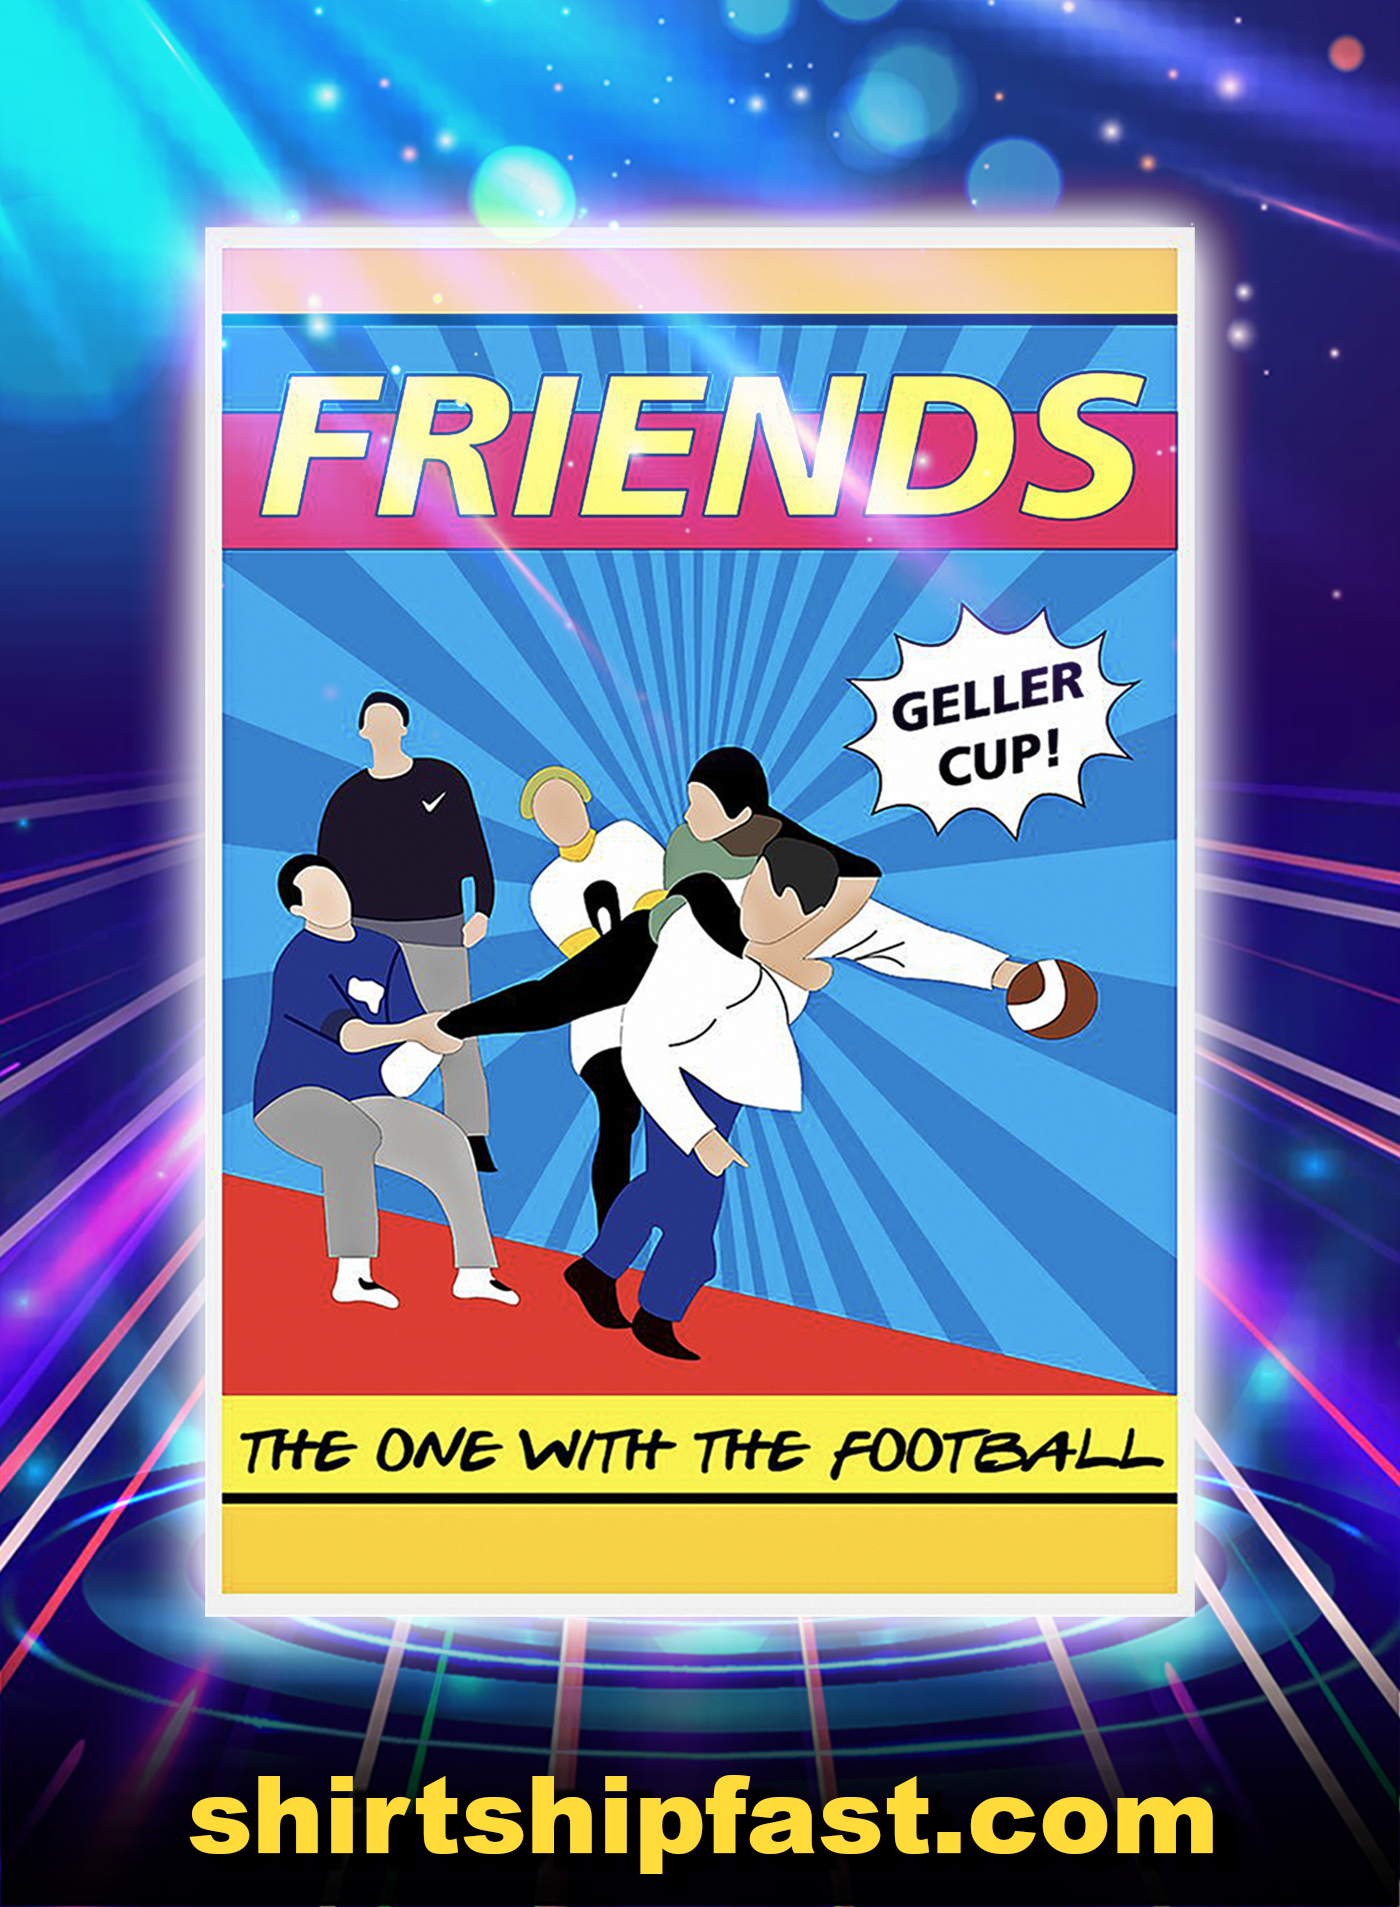 Friends geller cup the one with the football poster - A1